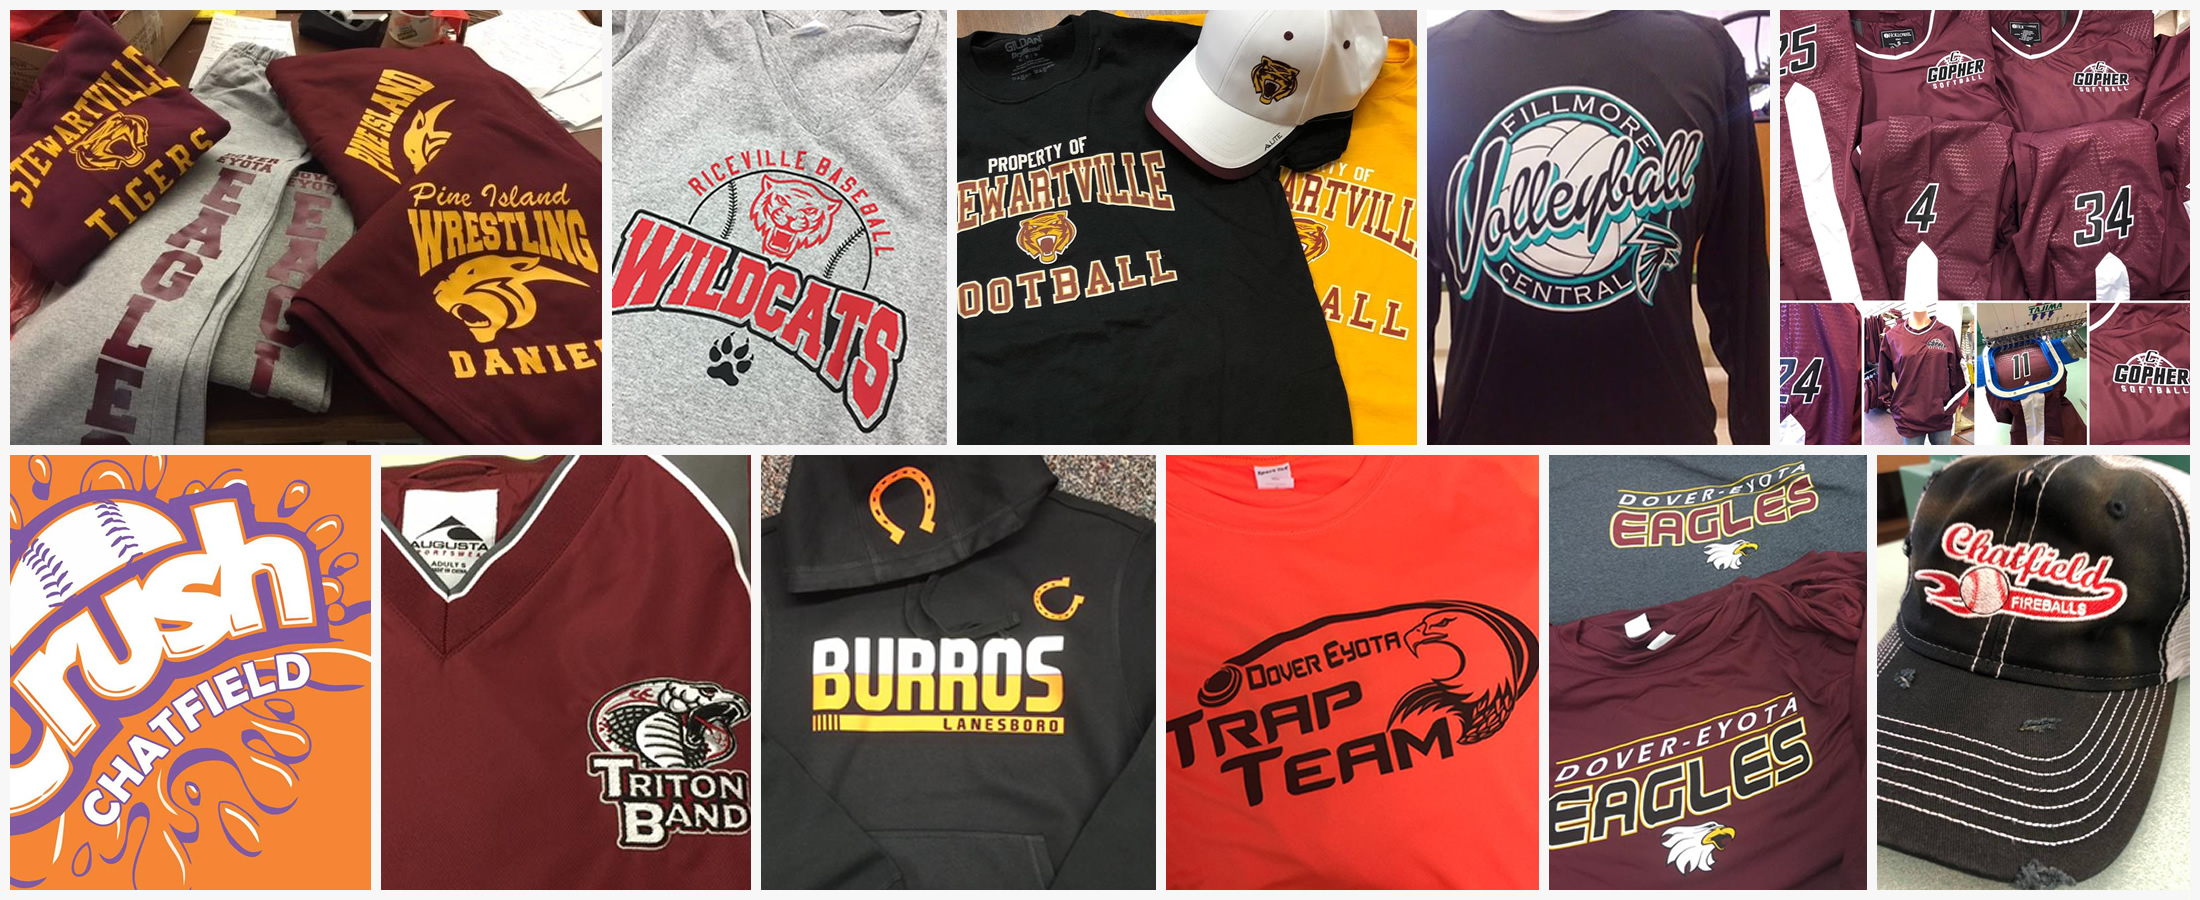 Threads Custom Apparel, Lisa, Mat, Vaupel, Chatfield, Minnesota, Custom Embroidery, Screen Printing, Vinyl, Heat Transfer, Custom Clothing Design, Tuxedo Rental, Dry Cleaning, Schools, Groups. Corporate, Gifts, Team Apparel, Team uniforms, school sports clothing, Benefits, walks, 5k, marathon, spirit, Logo, Shirts, Sweatshirts, Hats, polo shirts, jackets, farm clothing, athletic wear, performance clothing, online, jerseys, numbers, names, letters, Team Gear, School Gear, Sporting outfits, pants, bags, beanies, gifts, Tri Mountain, S&S Activewear, Holloway, SanMar, quality, fast, reliable, local, personable, in house made, Jersey Names, Corporate Gifts, Corporate Branding, Golf, Football, Soccer, Baseball, Softball, Basketball, Swimming, Hockey, Track, Trap Shooting, Wrestling, Academic, Math Wizards, Drama, MADD, Mayo, Band, High School, Middle School, Elementary School, Youth Programs, DayCare, Field Trips, Birthday, Volleyball, Girls, Boys, Cross Country, Varsity, B Team, Girls Weekend, Bridal Party, Bachelorette party, V-Neck, Cotton, Gore-tex, Nylon, spandex, under armor, Fleece, Hoodie, headband, shorts, Pullover, Chatfield, Gophers, Dover Eyota Eagles, FCLMC Wolves, Fillmore Central Falcons, GMLOK Bulldogs, Grand Meadow Super Larks, Kingsland Knights, Lanesboro Burros, LeRoy Ostrander Cardinals, Pine Island Panthers, Plainview Elgin Millville Bulldogs PEM, Rushford Peterson Trojans, Saint Charles Saints, Stewartville Tigers, Strongwell, Tuoey, Construction Apparel, Real Estate, Plumbers, Industrial, Agriculture, Big Girl Stickers, Kelly Printing, C&M Screen Printing, Full Court Apparel, Employee Recognition, novelties, coozie, Wedding Rental, Men's formal wear, fan apparel, blankets, parade novelties, radio, KFIL, Griffin Construction, Polar Plunge, Western Days, Trout Days, Buffalo Bill Days, Ag Days, Restaurant staff, Fair, 4-H, Horse Shows, Studio 223, shopping, Stadium seats, branding